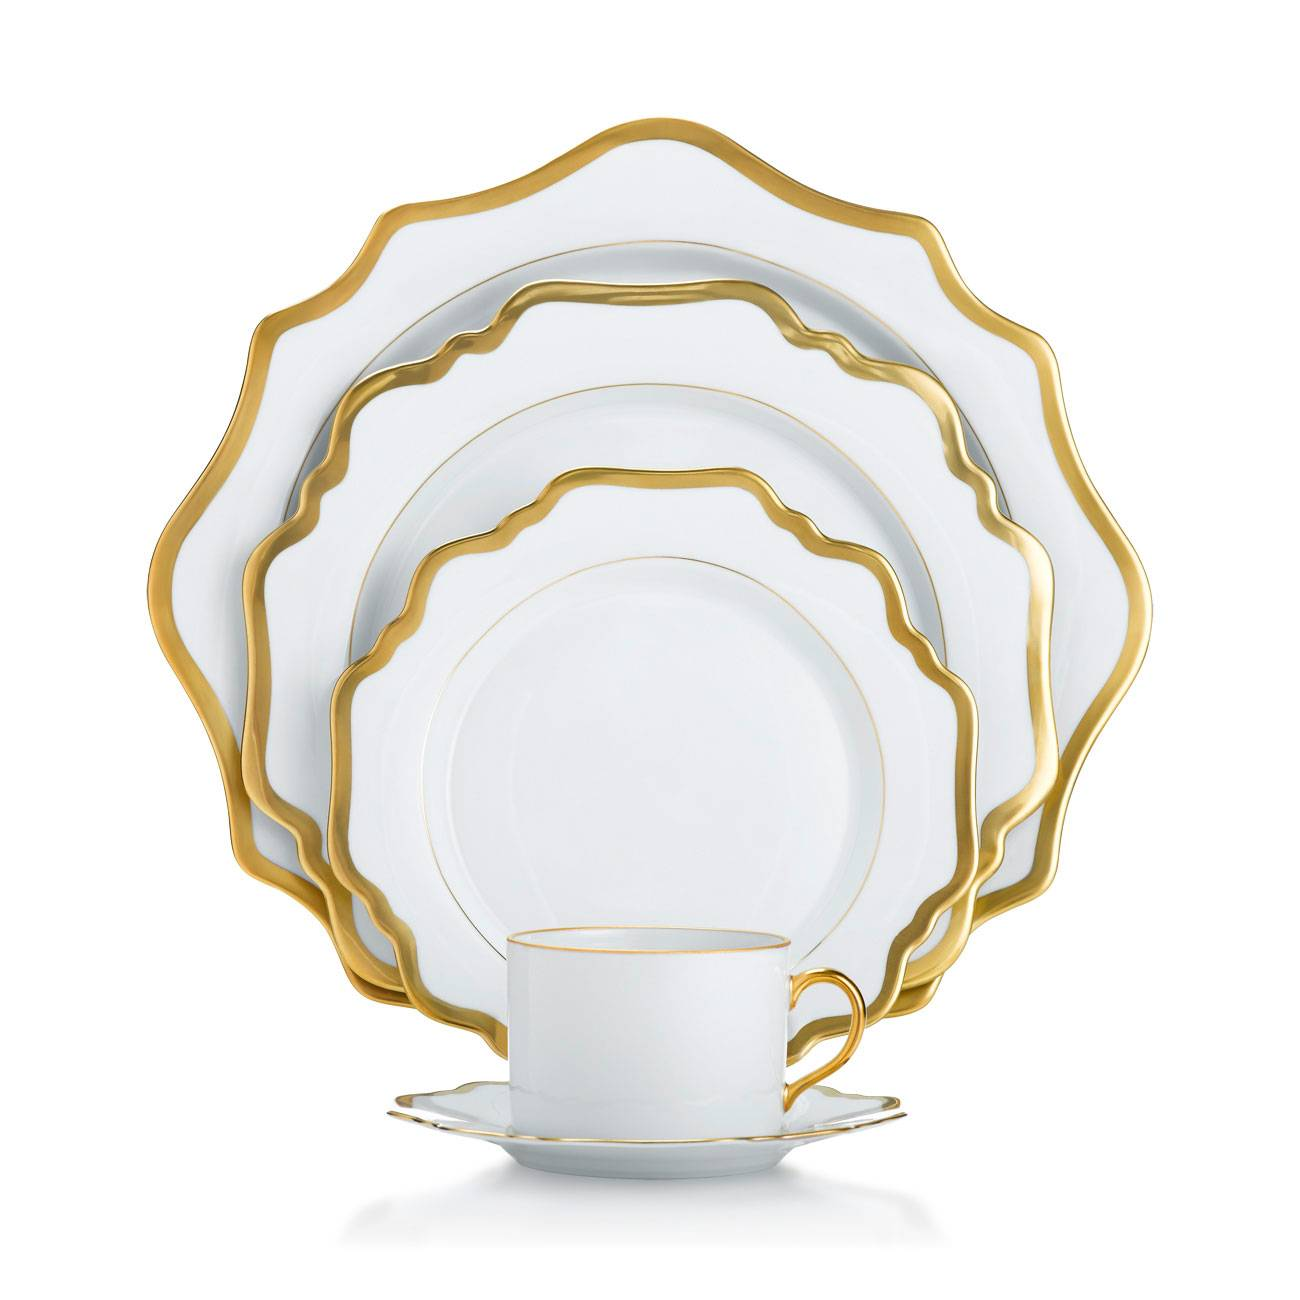 Anna Weatherley Antique White with Gold Collection  sc 1 st  Michael C. Fina : antique white dinnerware - pezcame.com